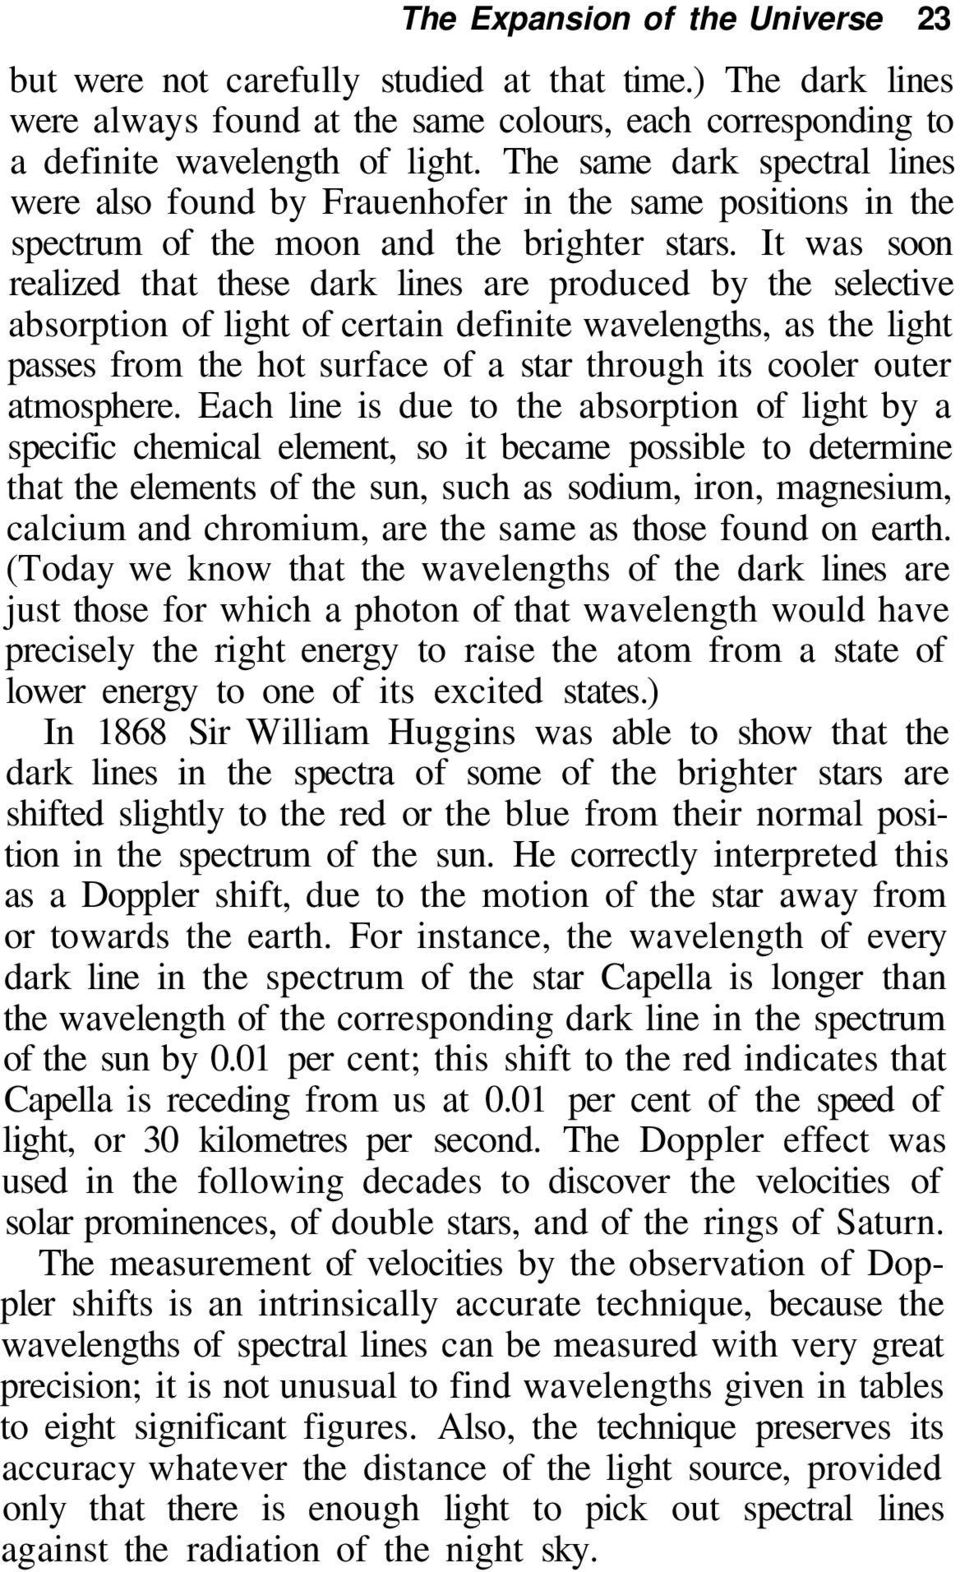 It was soon realized that these dark lines are produced by the selective absorption of light of certain definite wavelengths, as the light passes from the hot surface of a star through its cooler